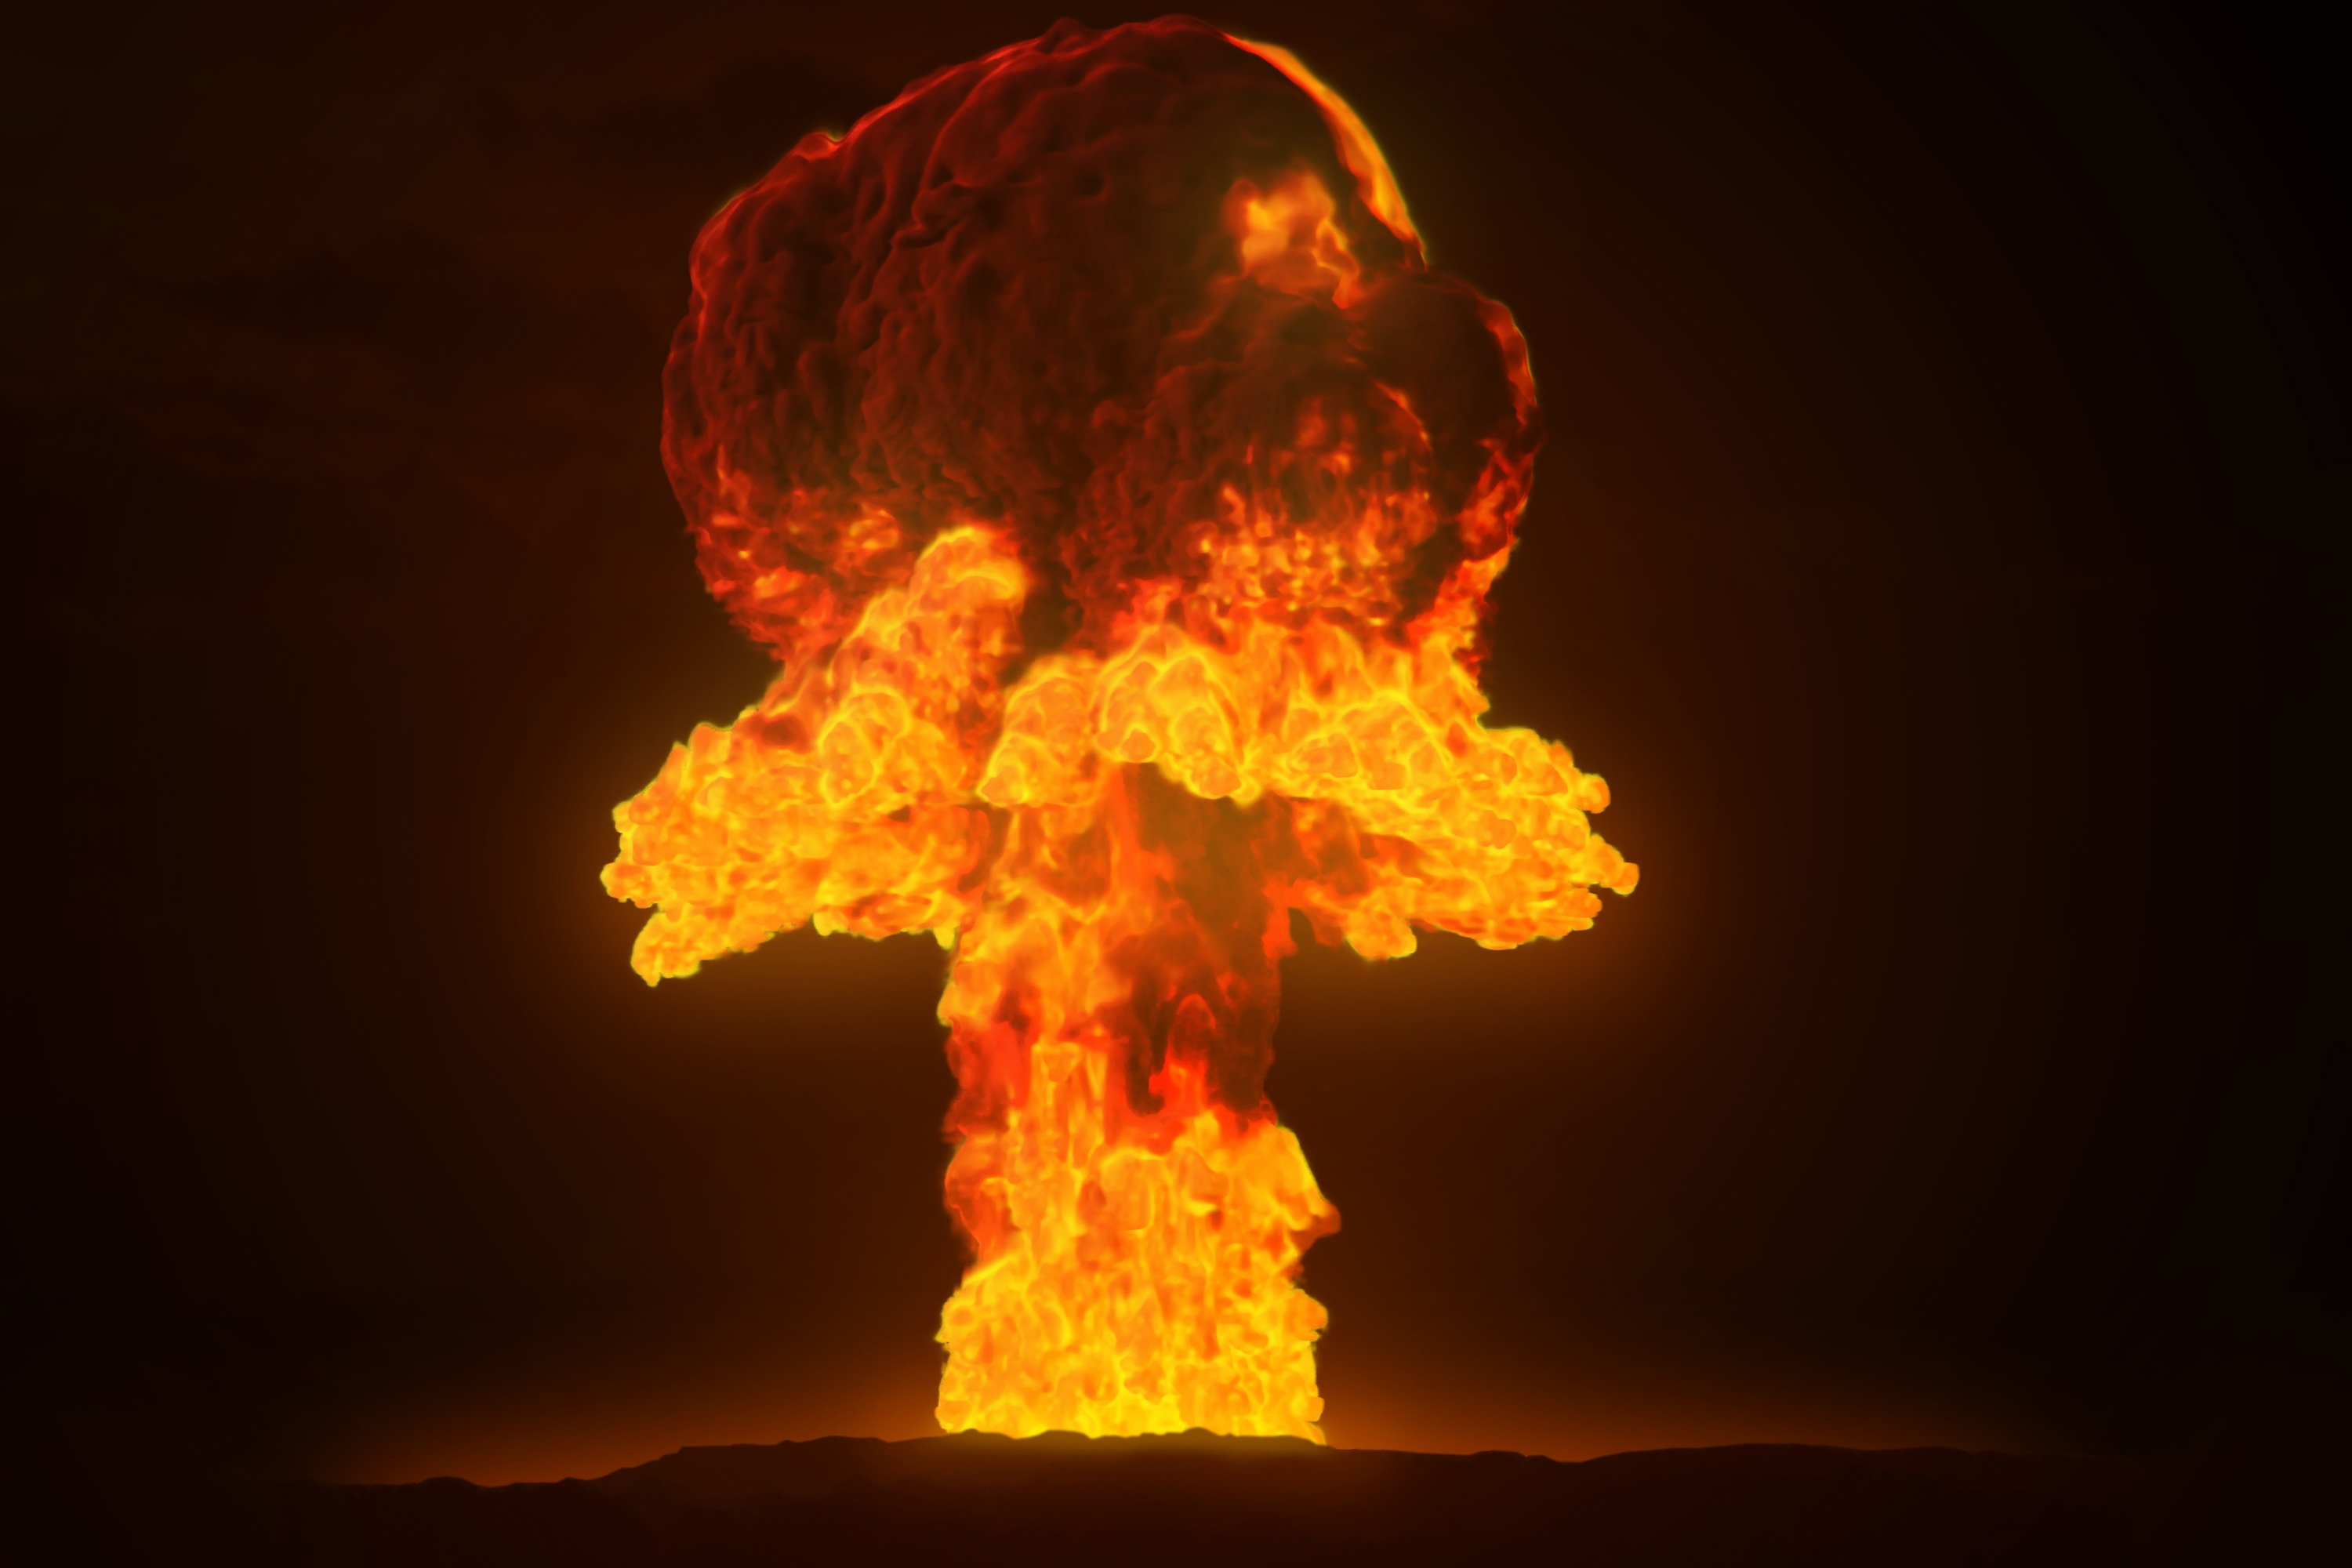 nuclear weapon explosion hd wallpaper wallpapers gg